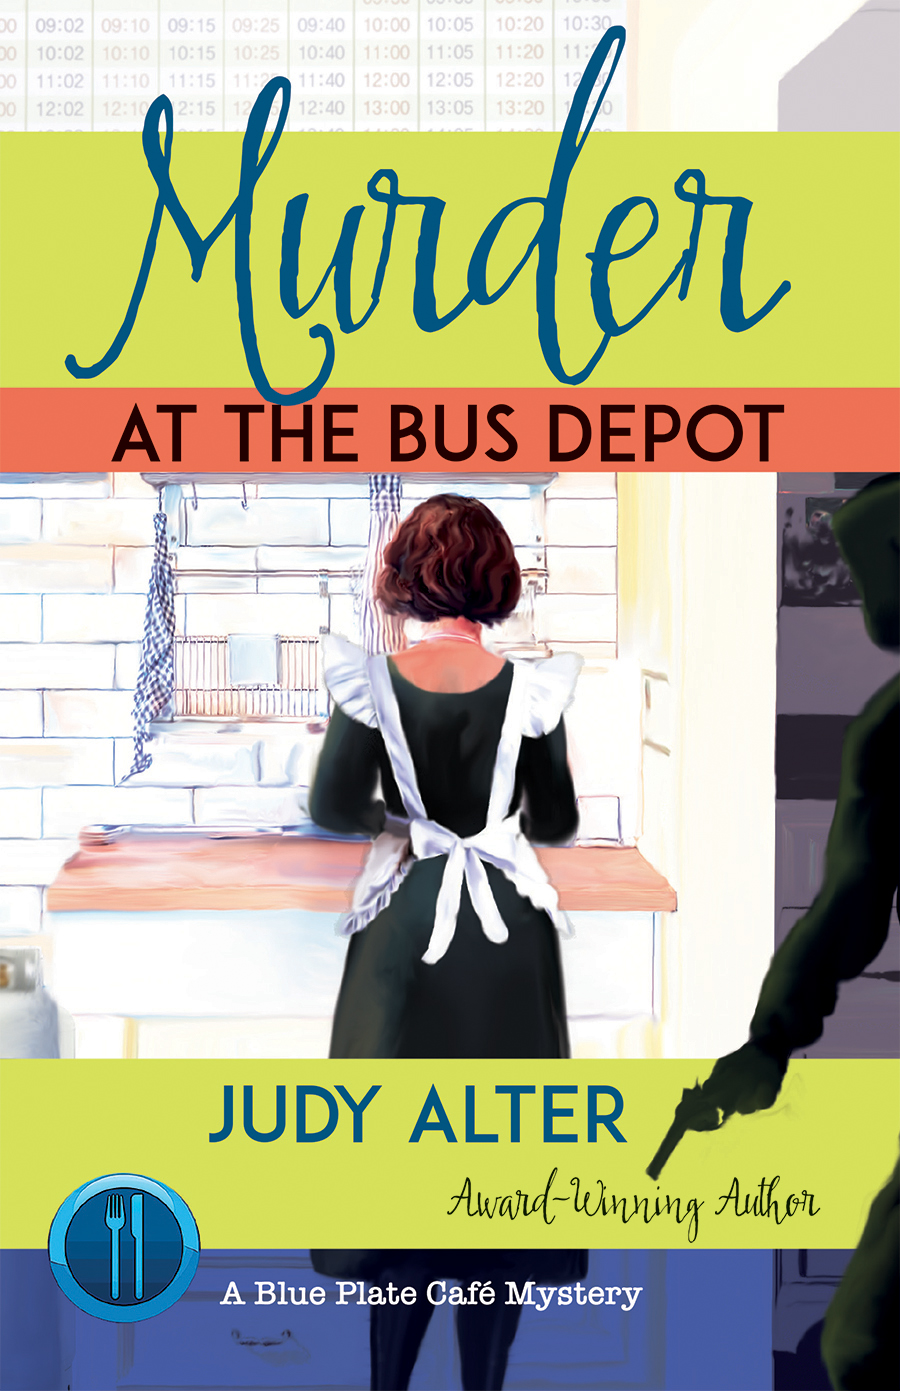 Murder at the Bus Depot